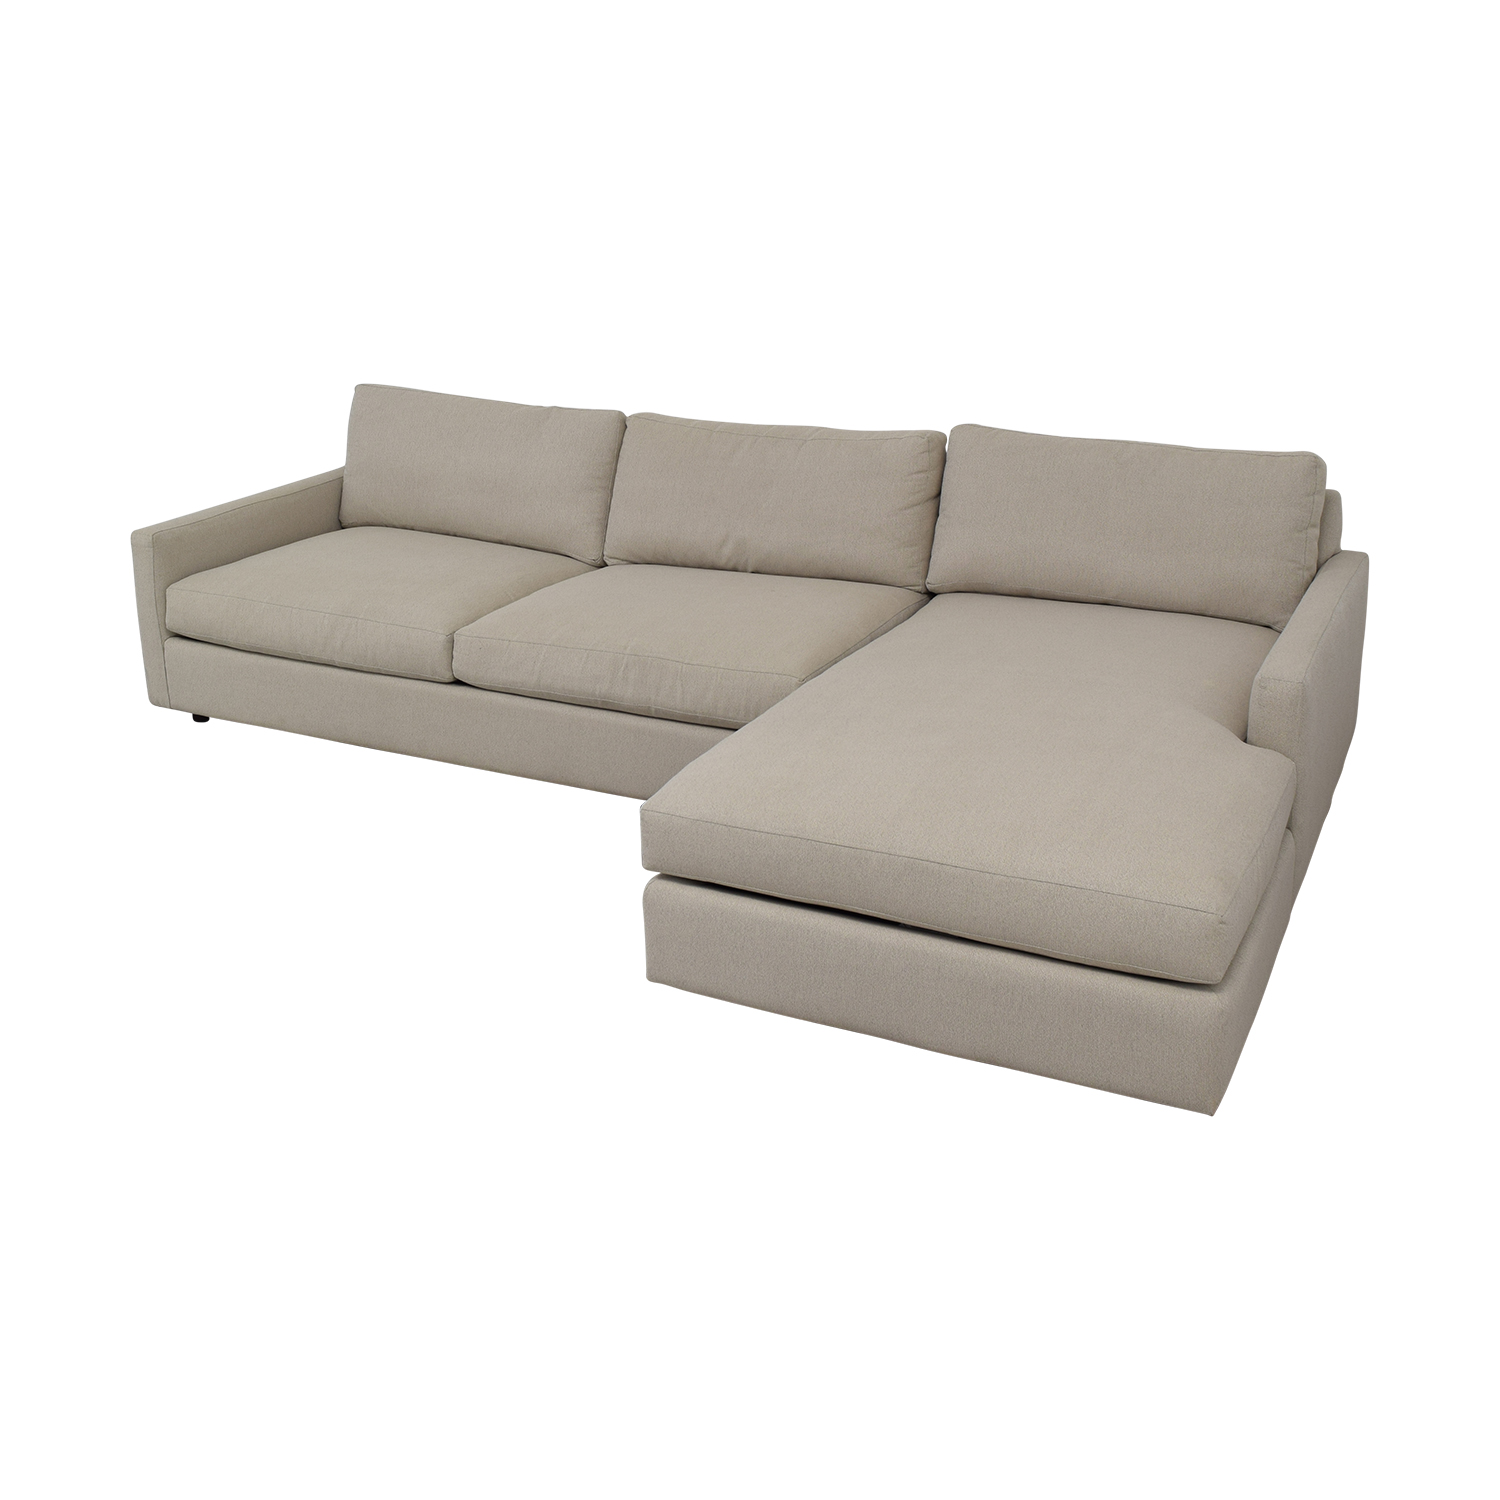 Room & Board Linger Sofa with Chaise / Sofas